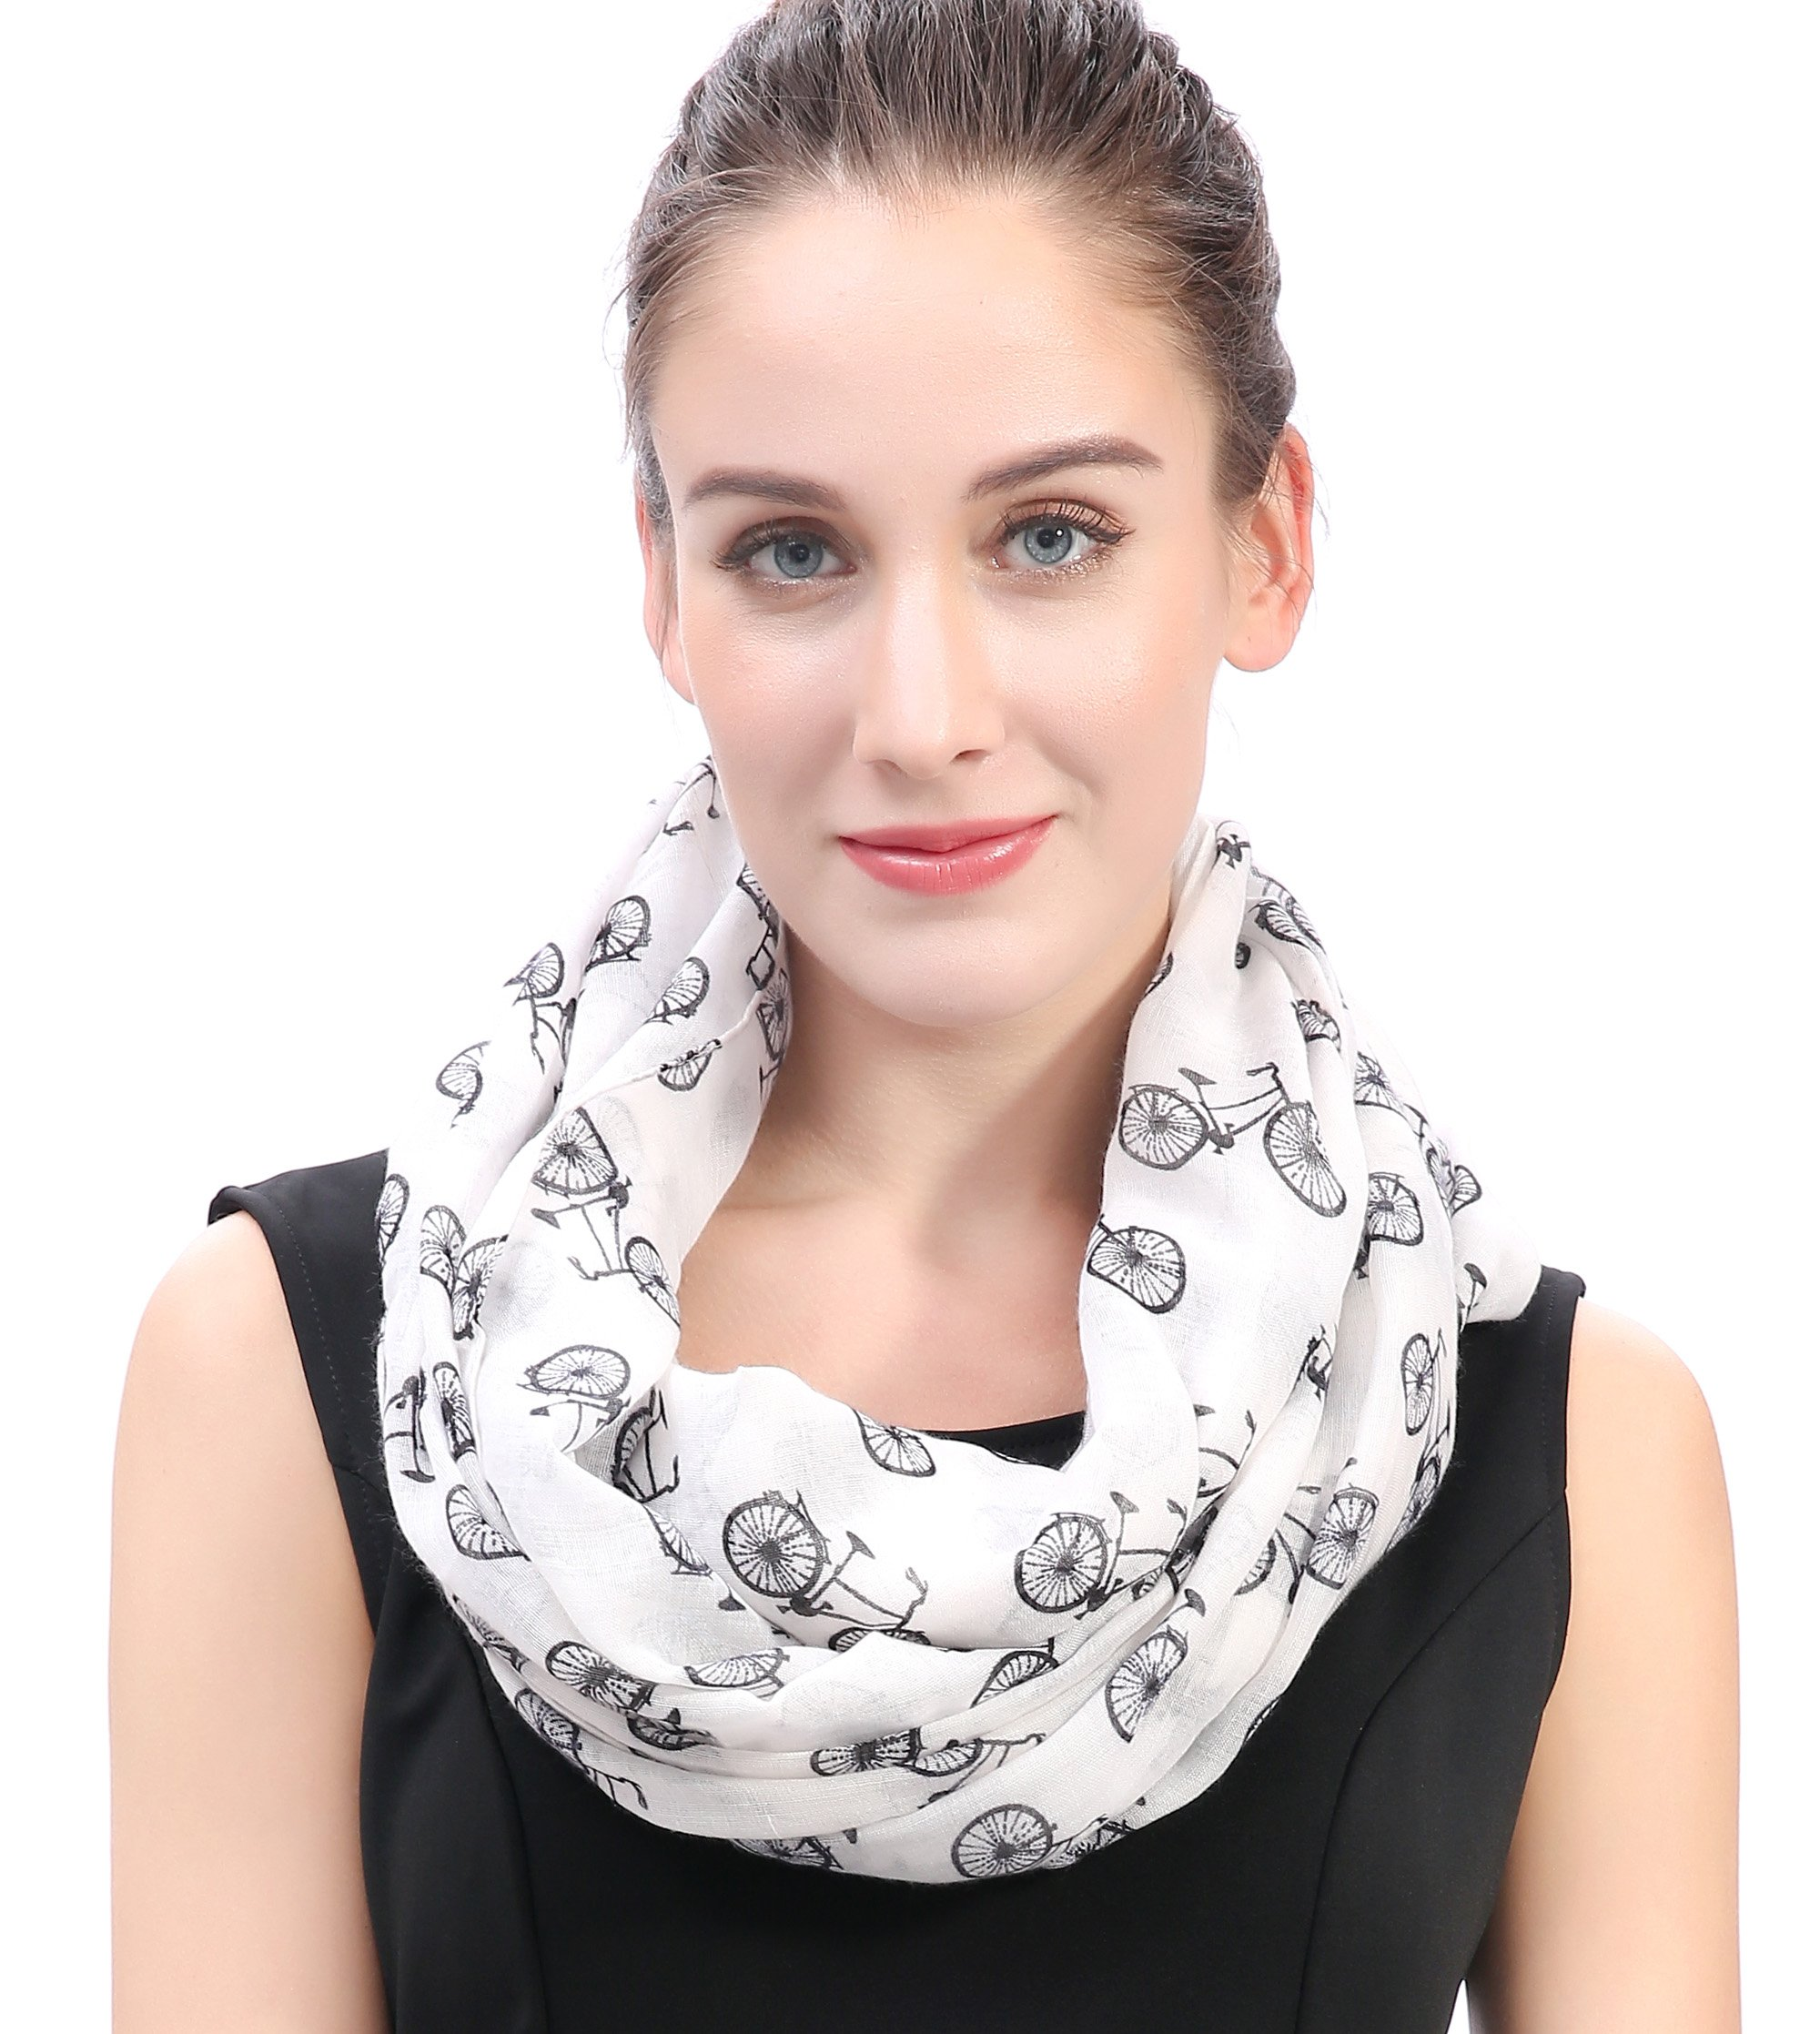 Lina & Lily Vintage Bicycle Print Loop Infinity Scarf for Women Lightweight (White and Black)